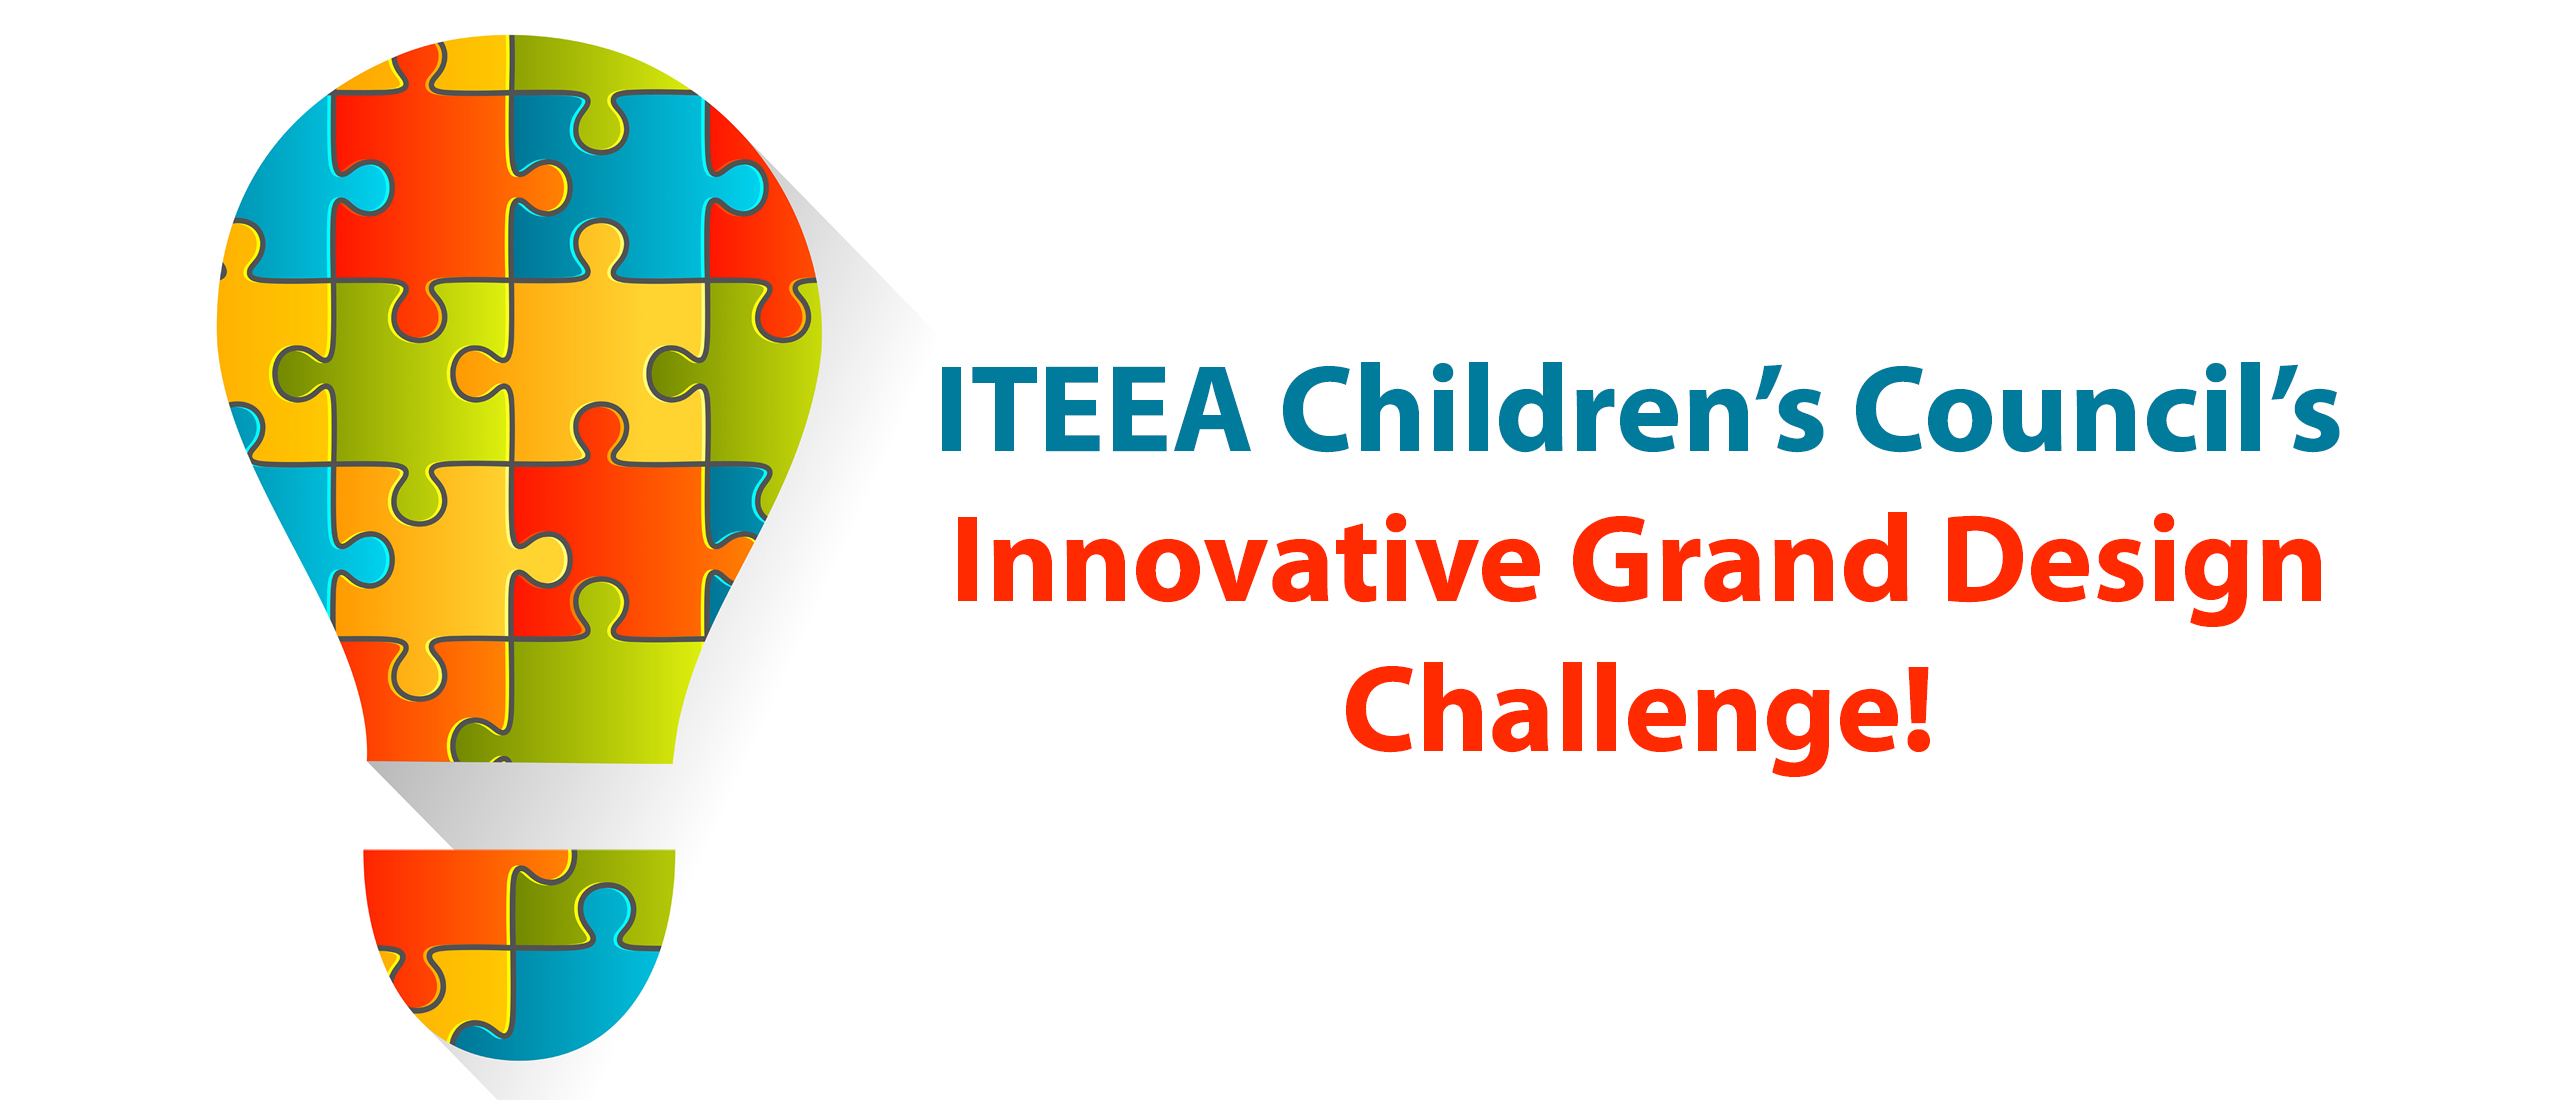 ITEEA Children's Council Announces Elementary Innovative Design Challenge